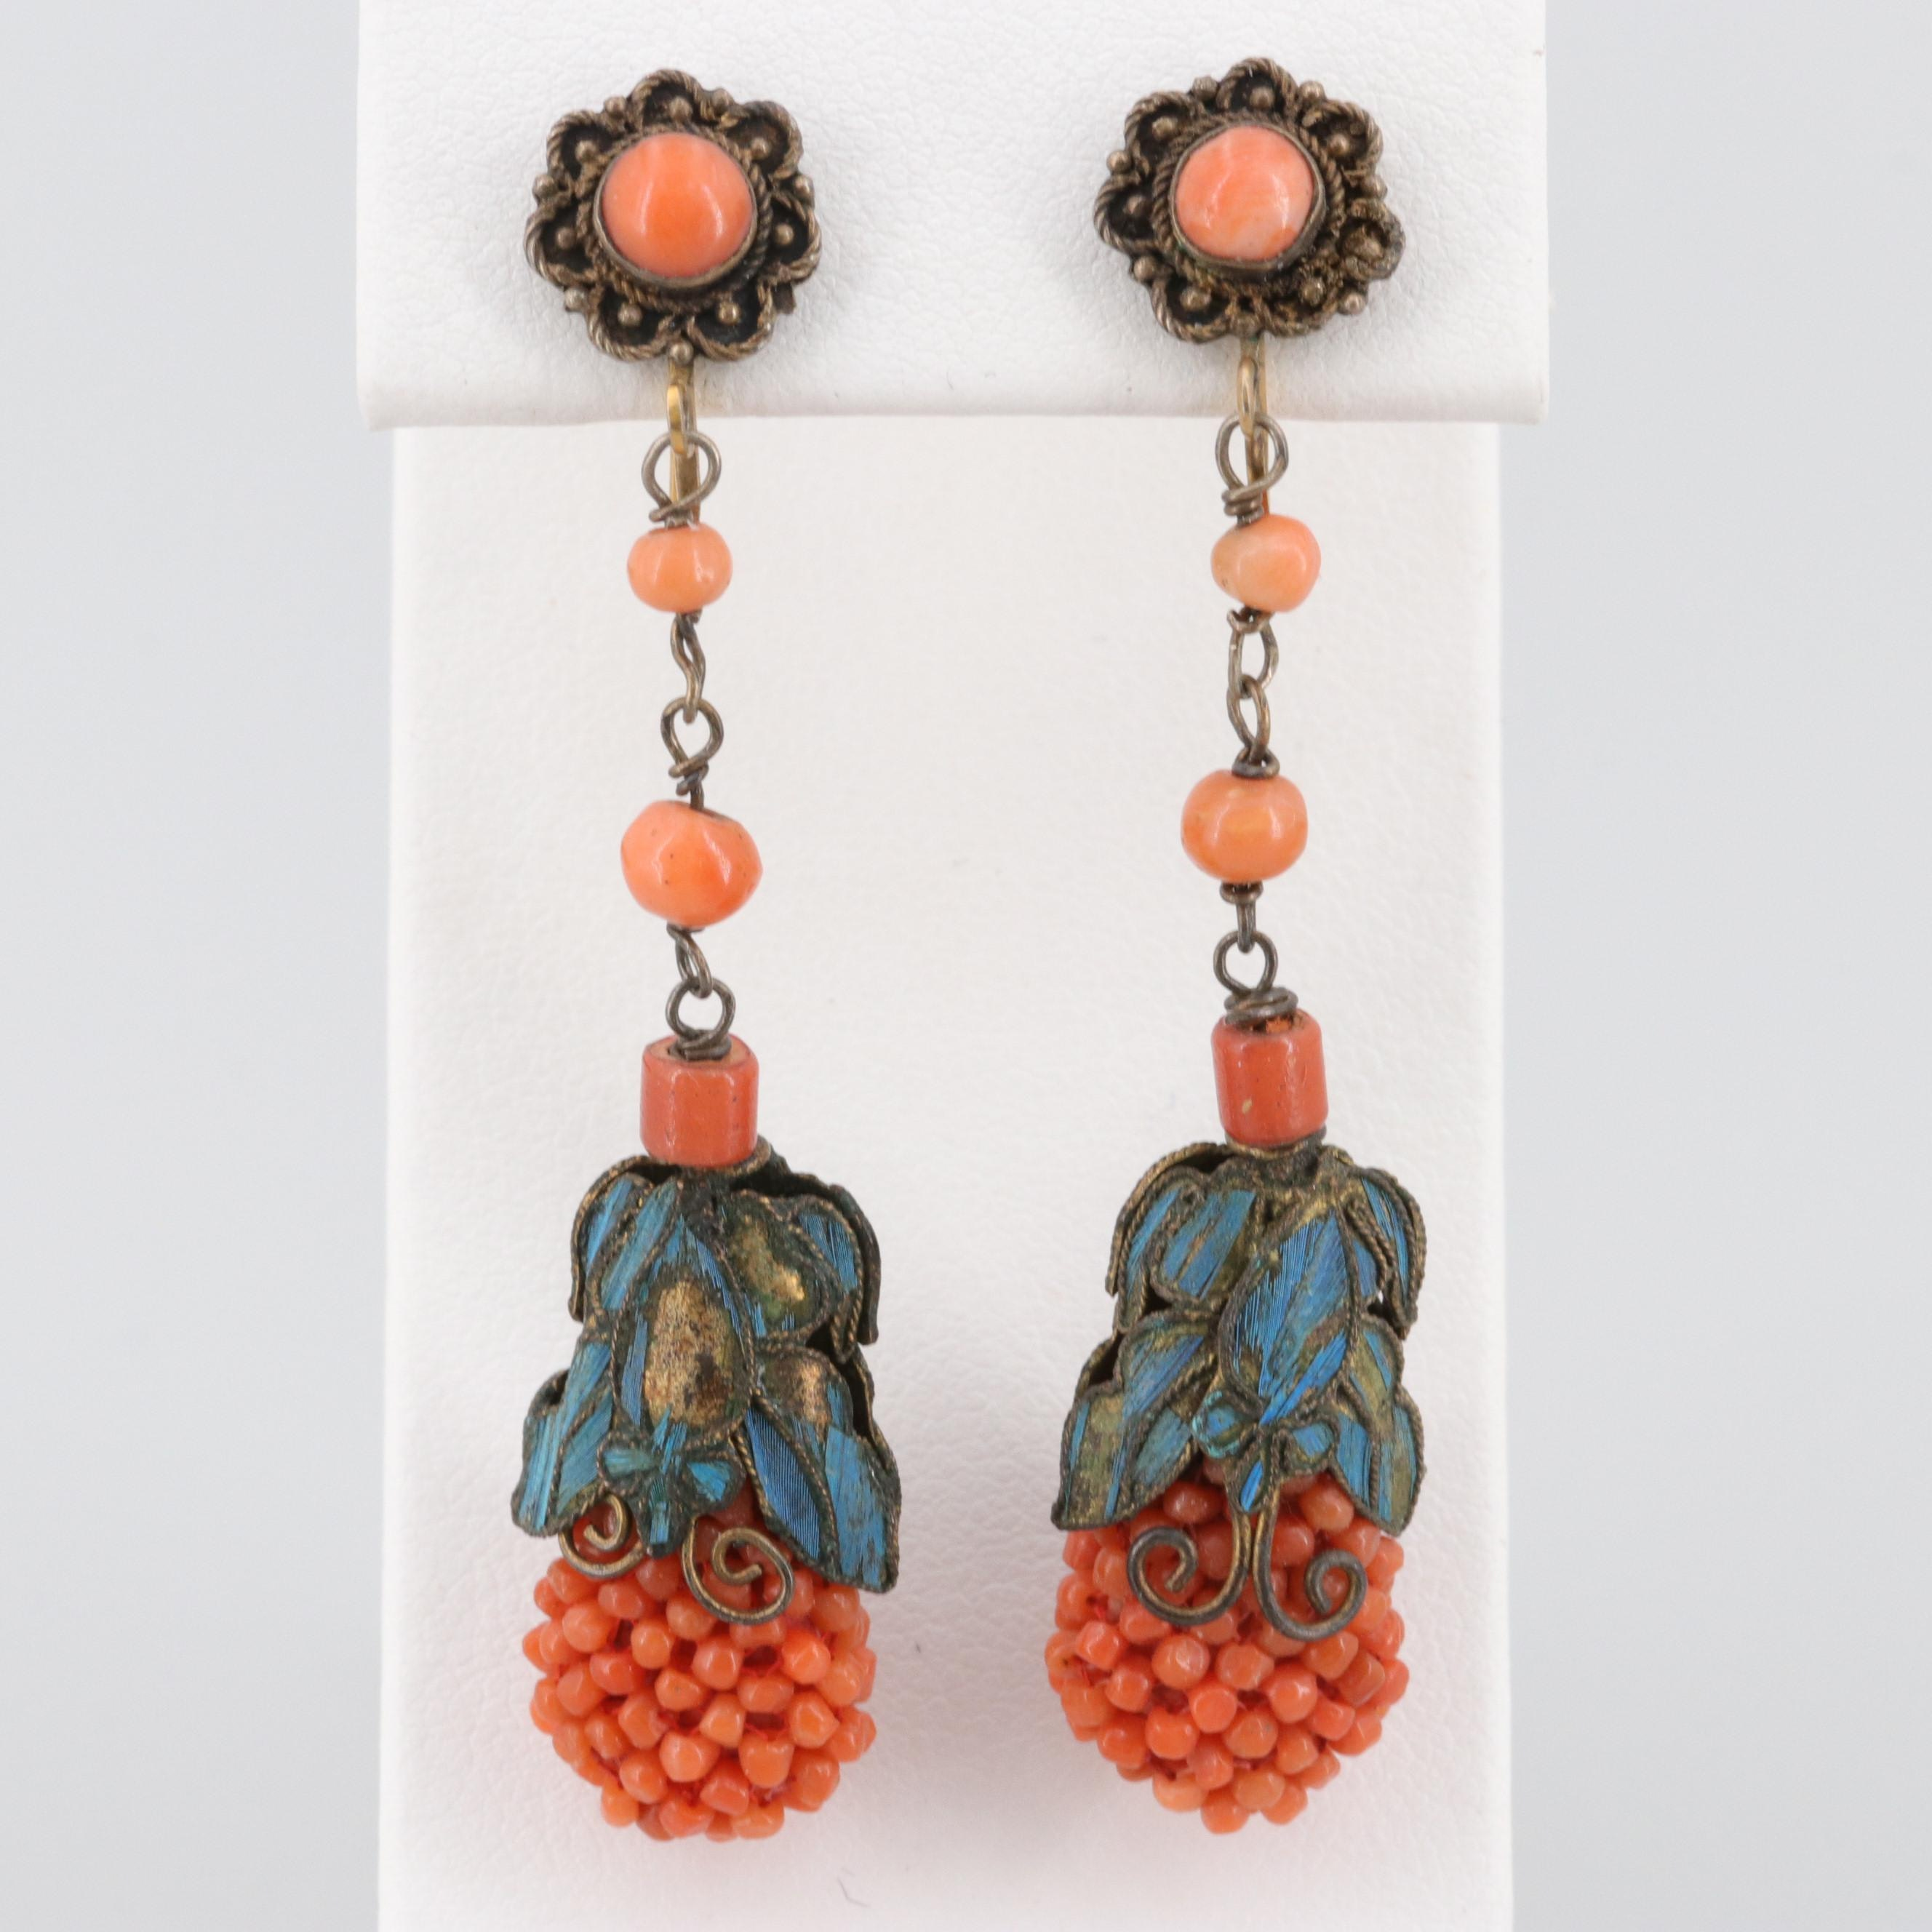 Antique Chinese Tian-Tsui Kingfisher Feather Coral Earrings with Gilt Wash